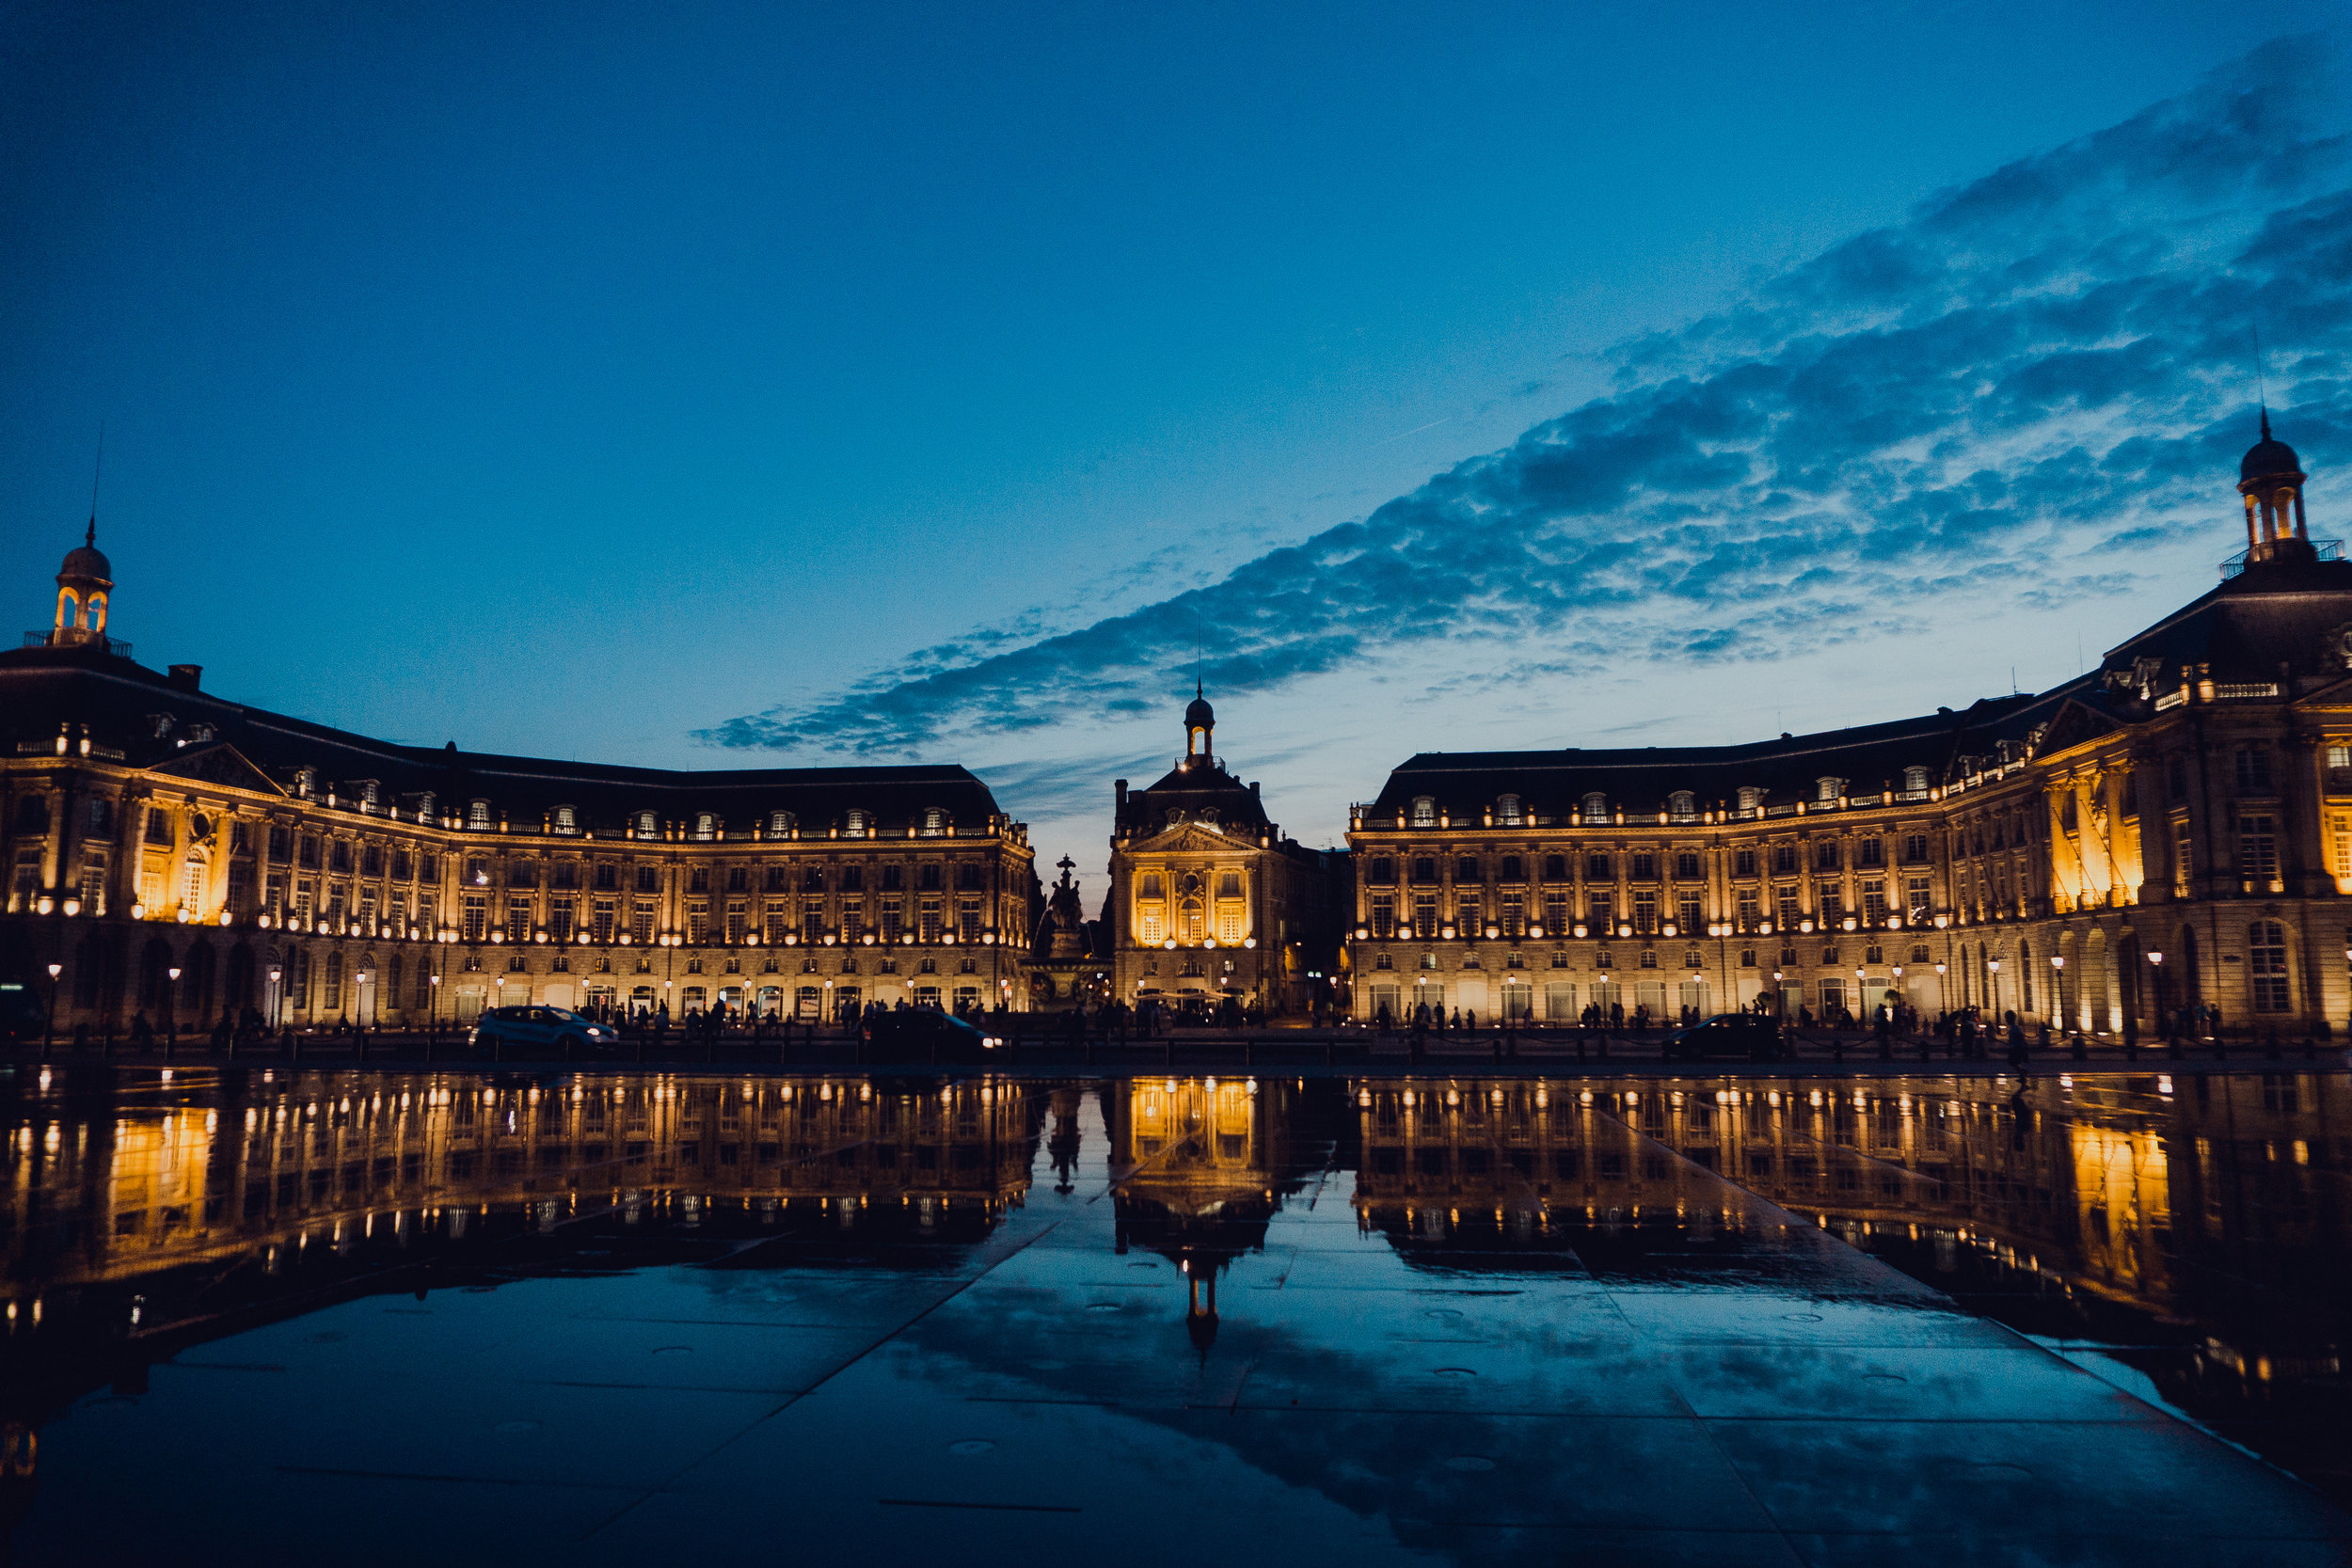 Note that this image and the cork image above are not my own but provided by Squarespace. I just wanted you to be able to see how stunning the  miroir d'eau  looks when the water is on!